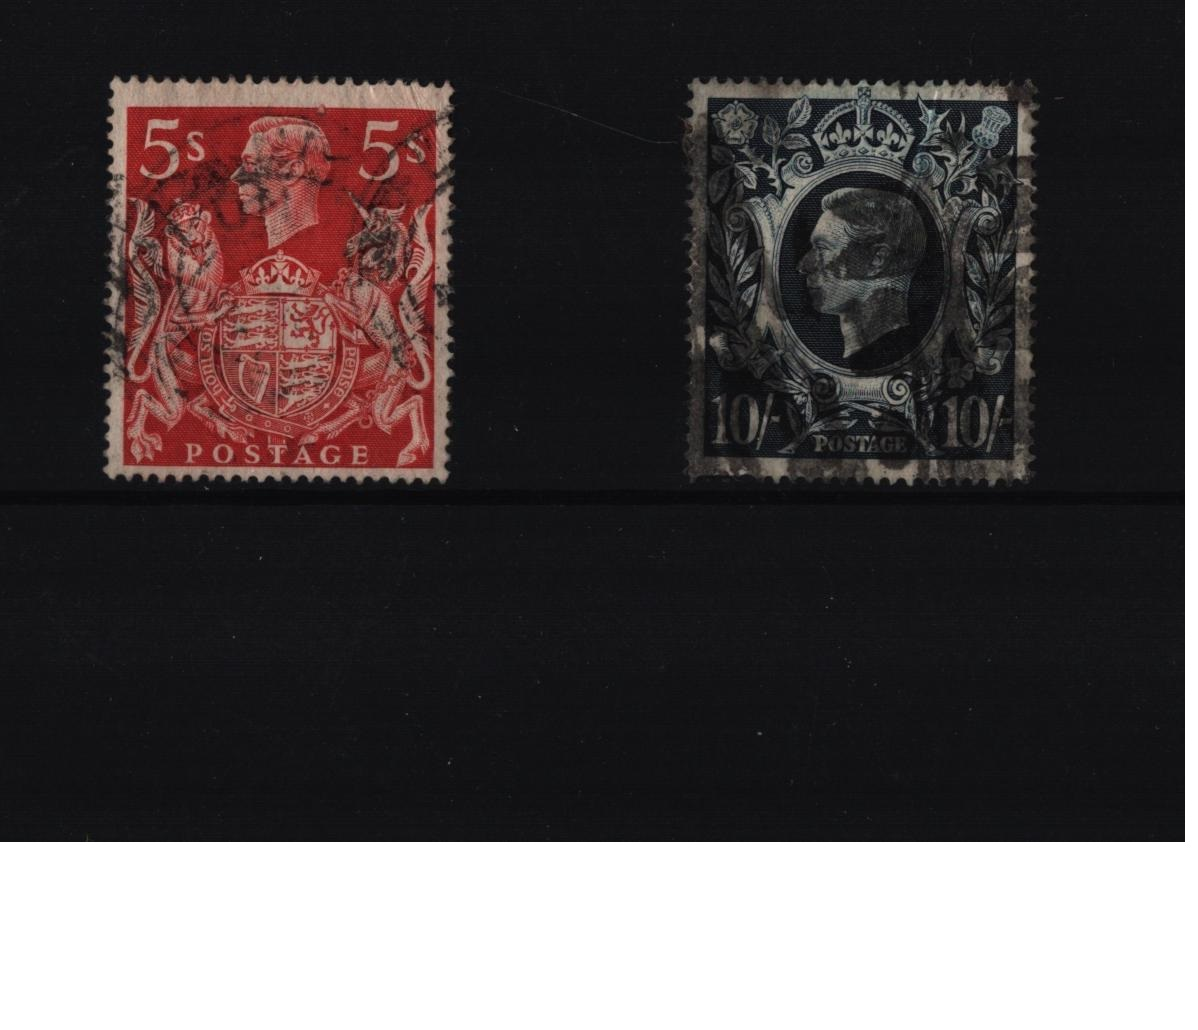 1939 SG 477 5/= and SG478a 10/= stamps. Good condition. We combine postage on multiple winning